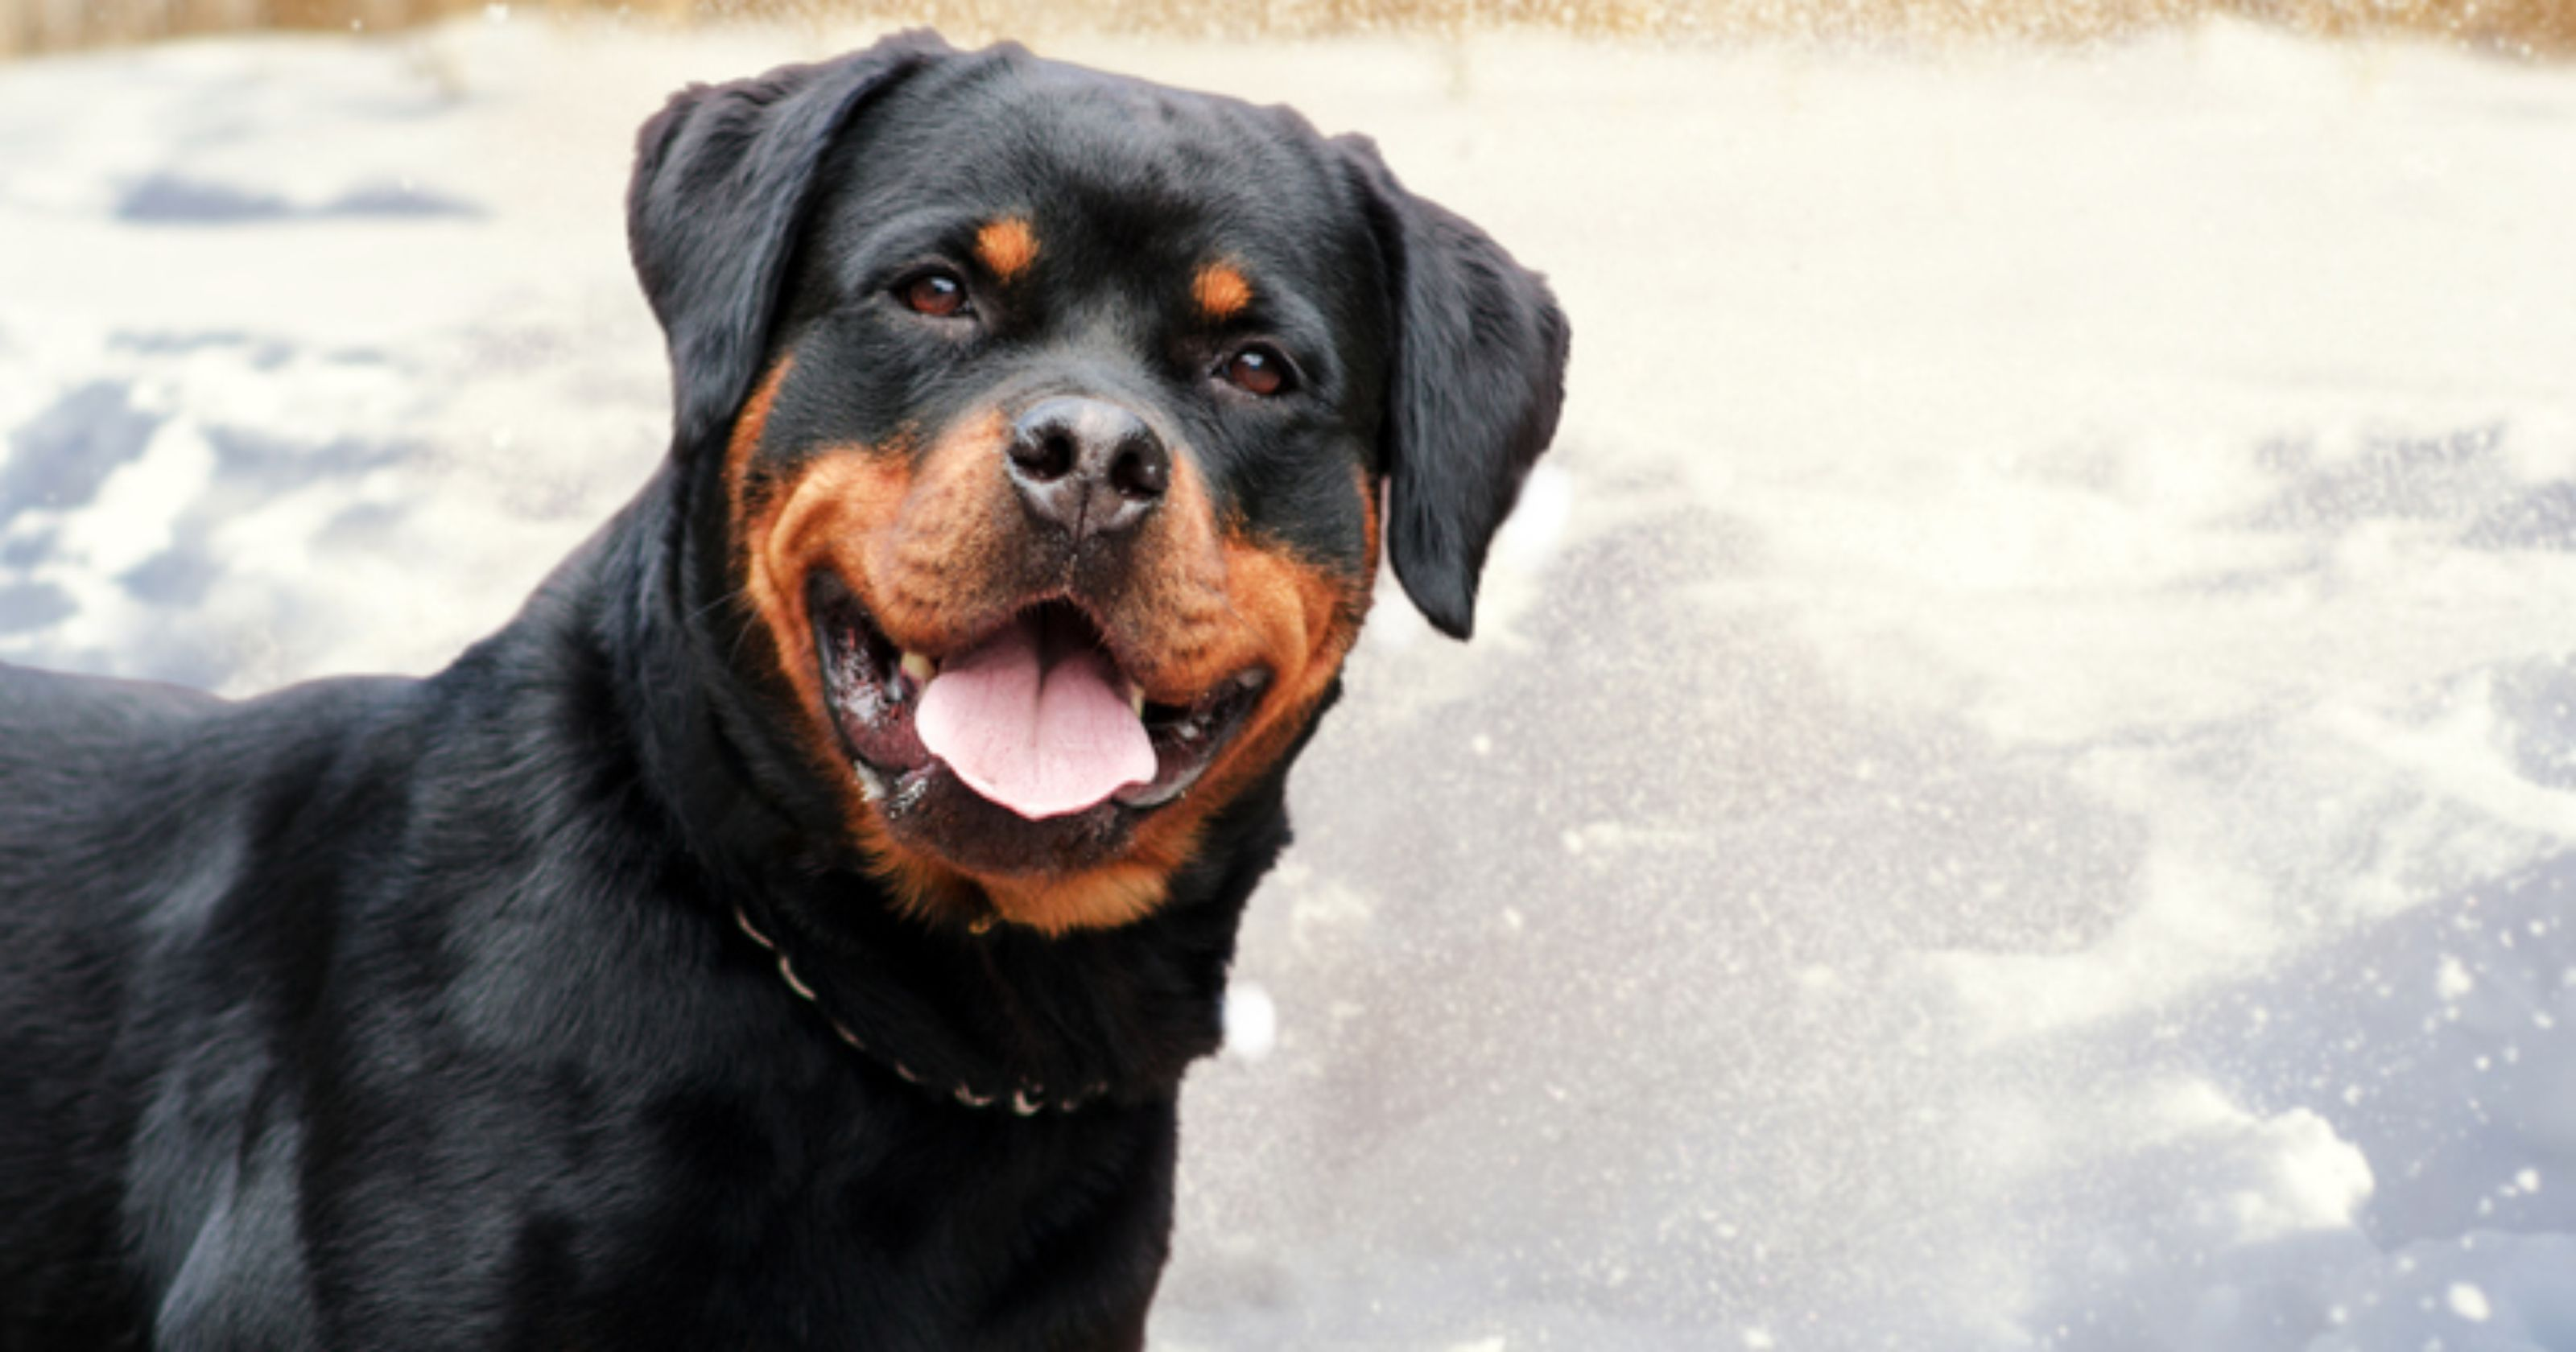 Rottweiler is most searched dog breed in Pennsylvania, study finds